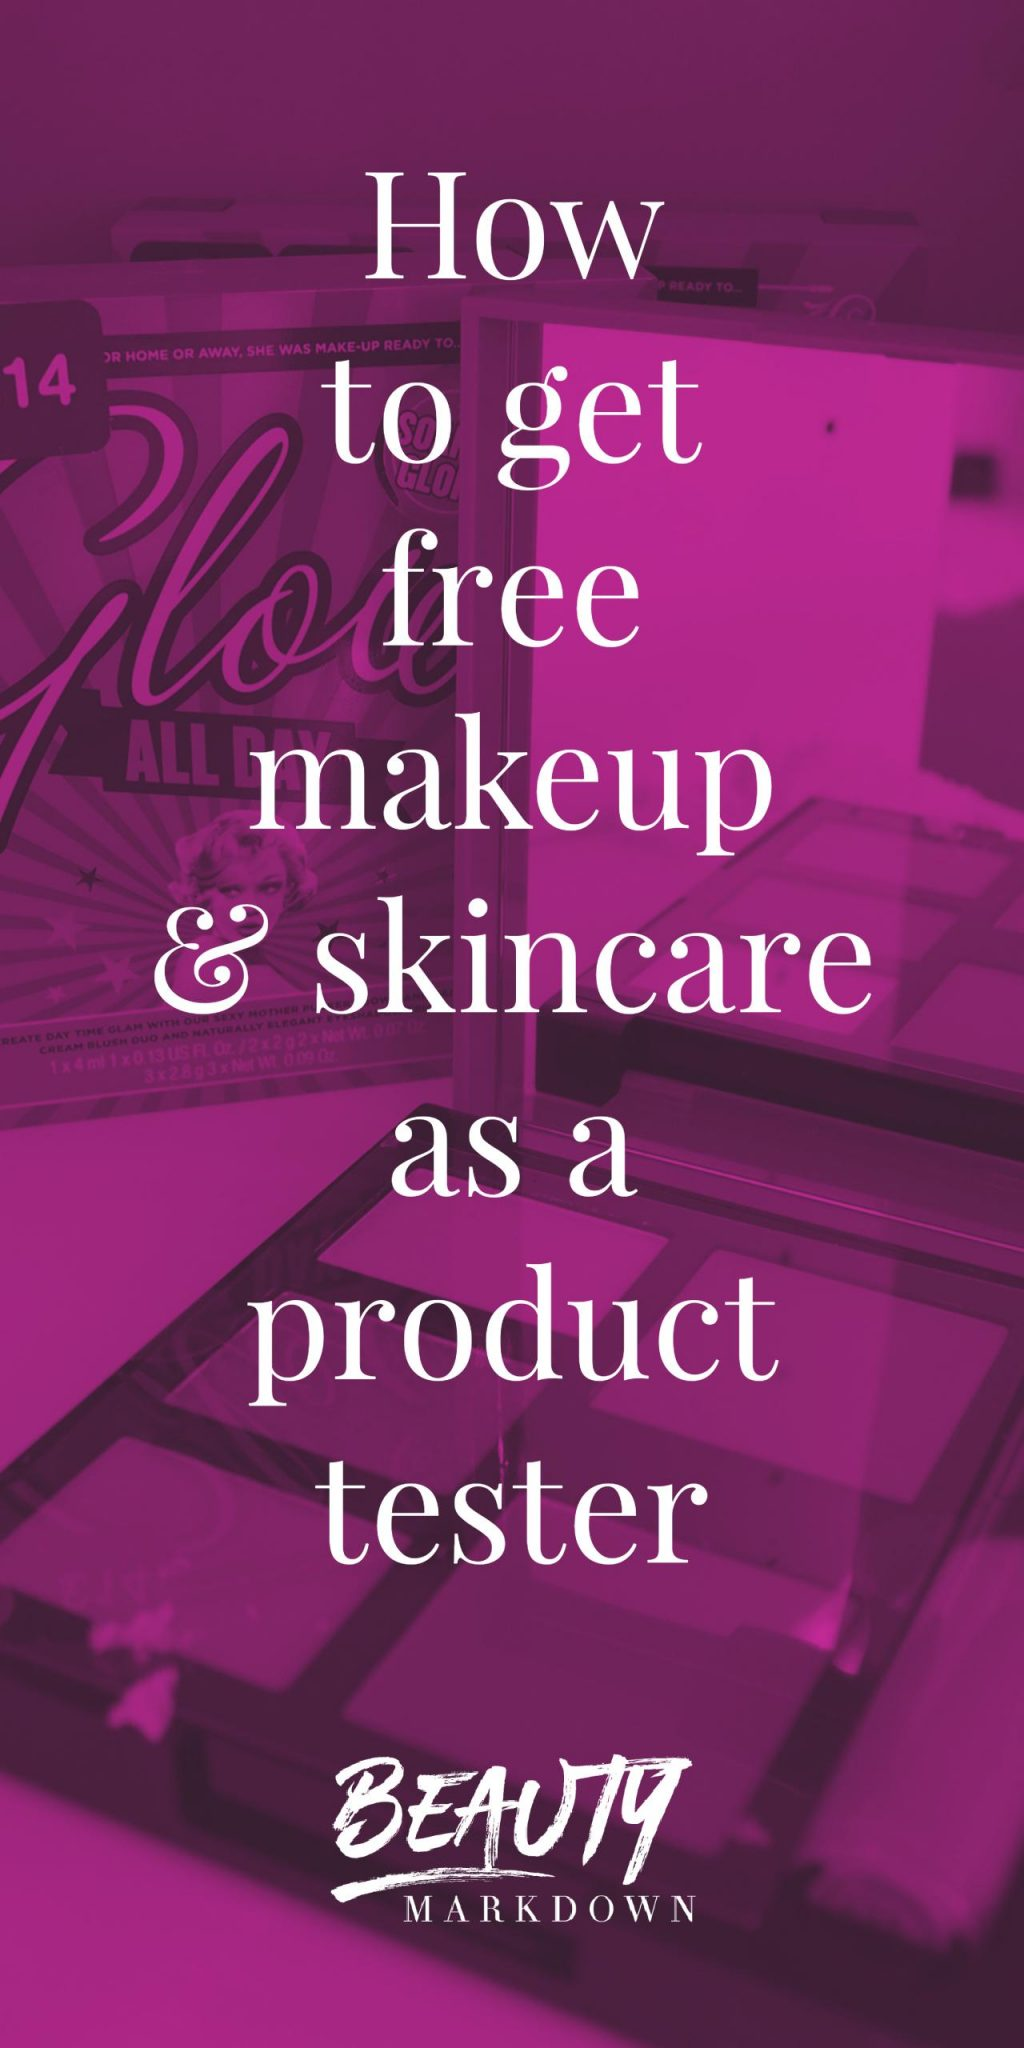 How you can get free beauty products, makeup and skincare just for being a guinea pig. Beauty obsessives on a budget are going to LOVE this.